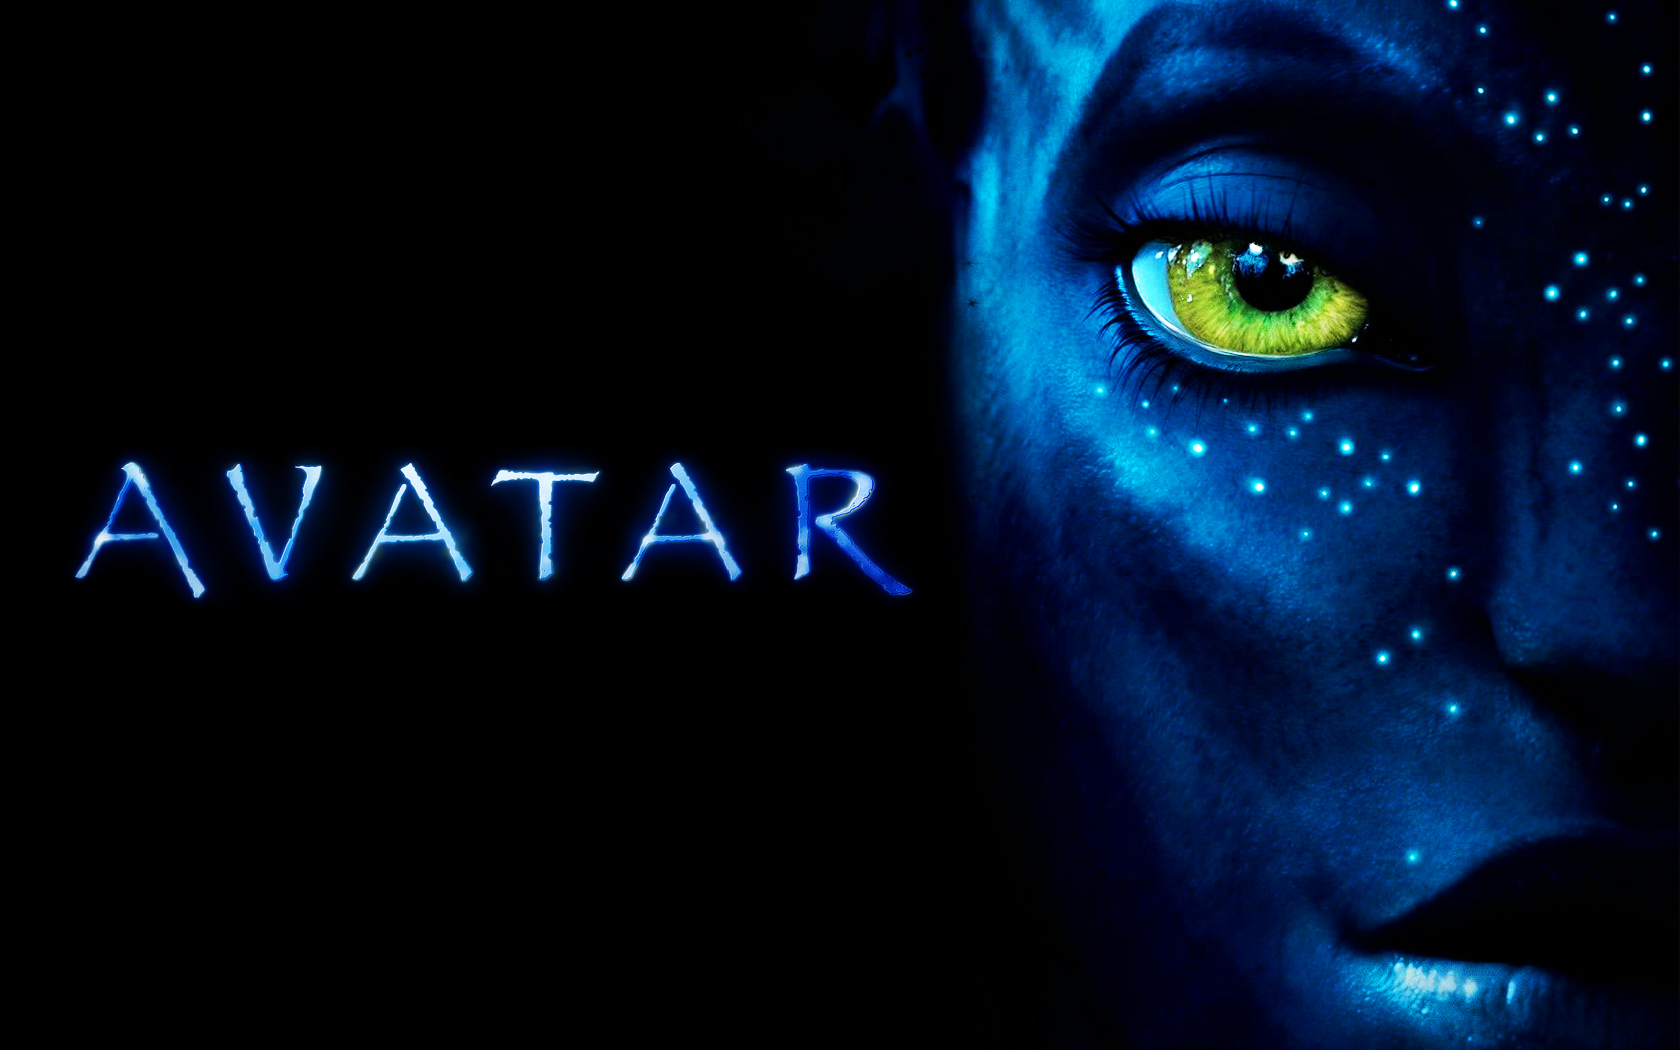 Avatar Wallpaper HD